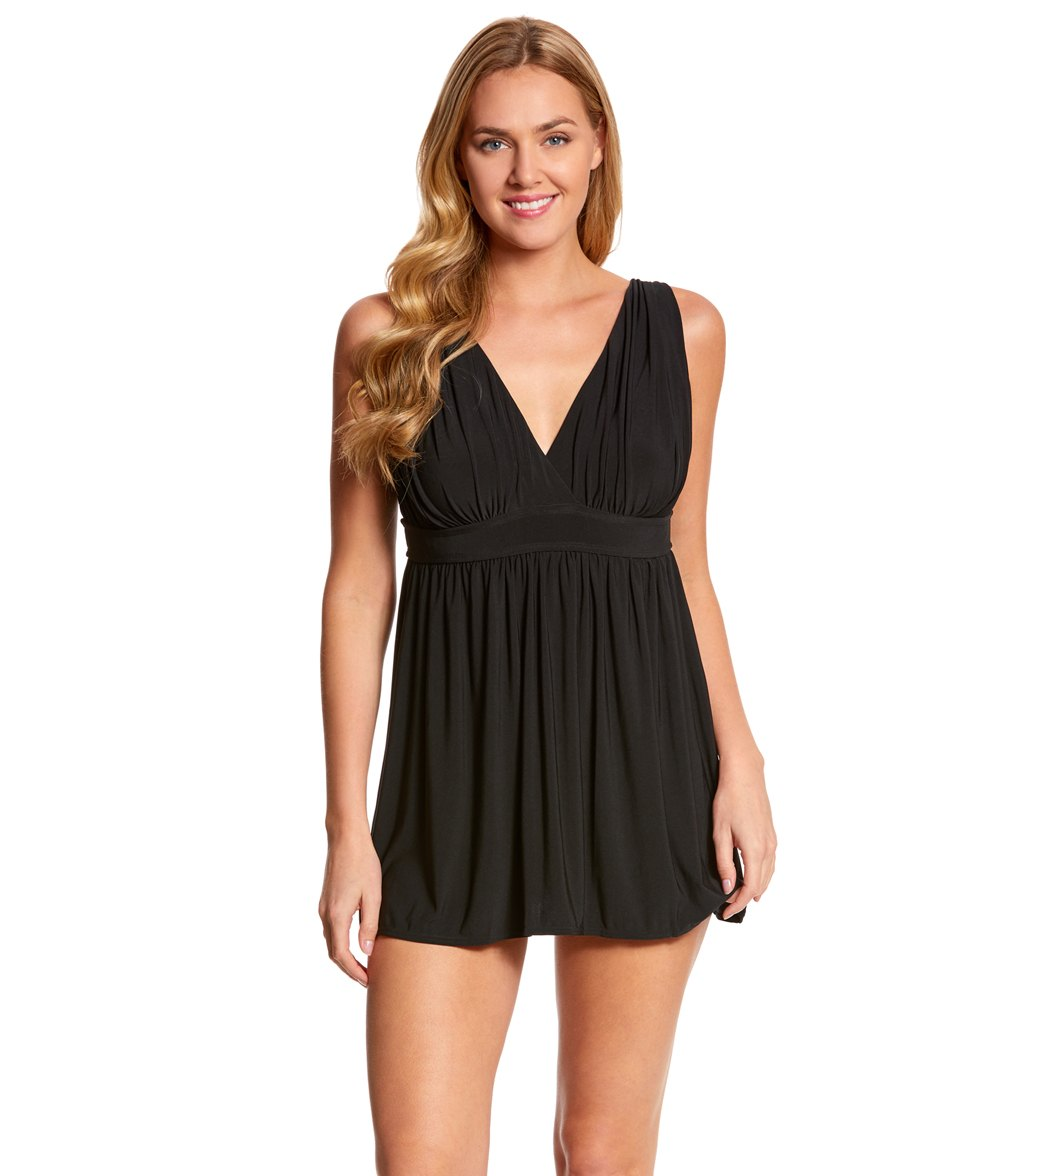 904acaa474e Longitude Shirring Chic Goddess Long Torso Swim Dress at SwimOutlet.com -  Free Shipping